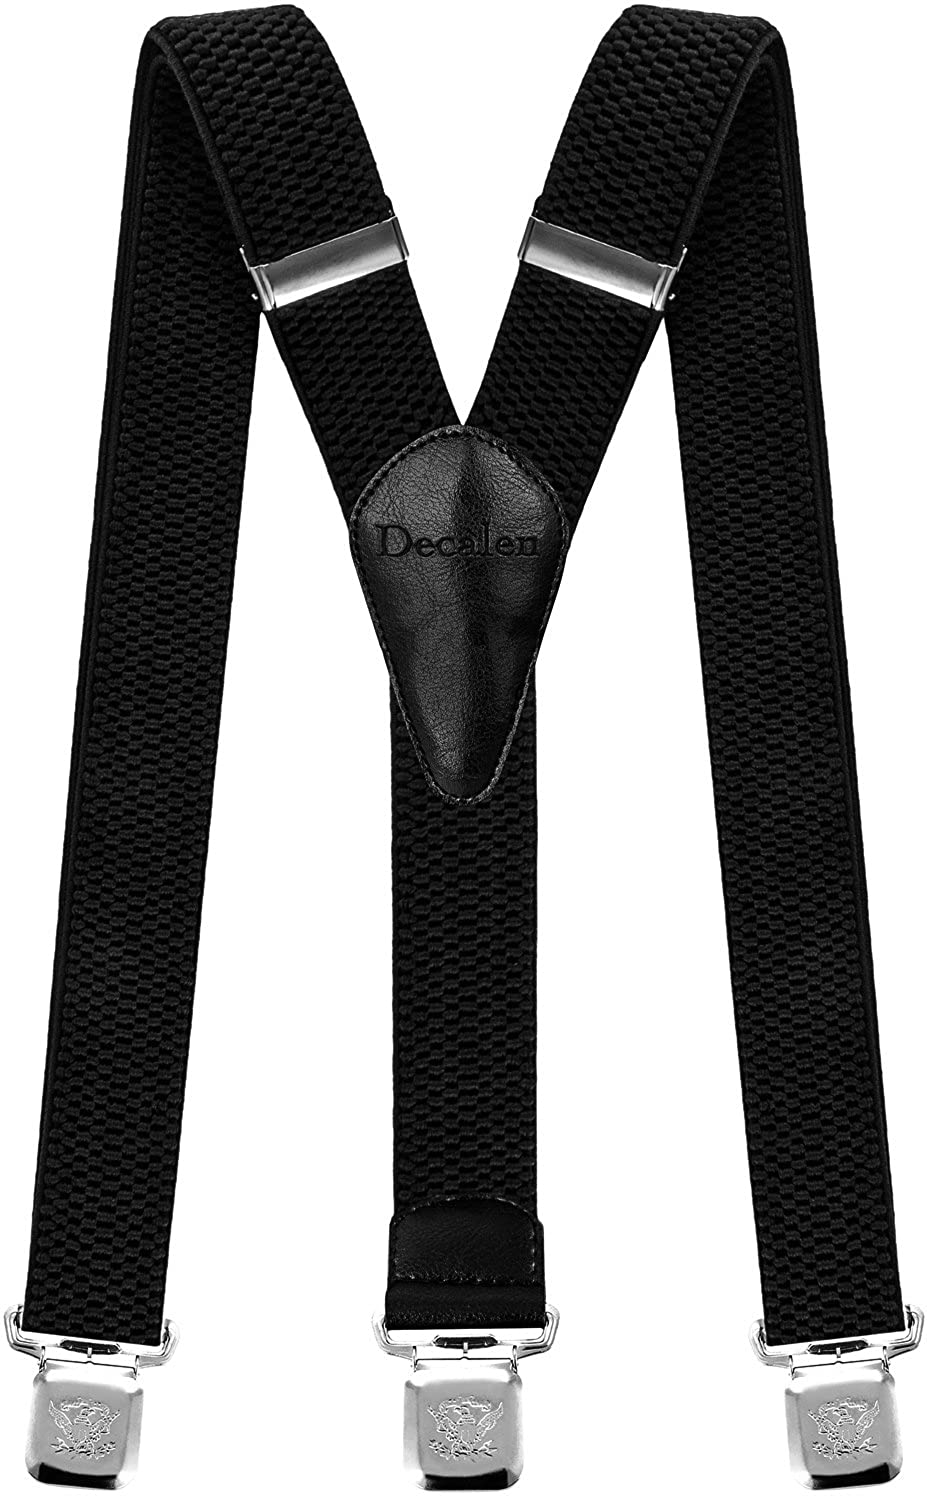 Mens Suspenders Very Strong Clips Heavy Duty Braces One Size Fits All Wide Y Shape